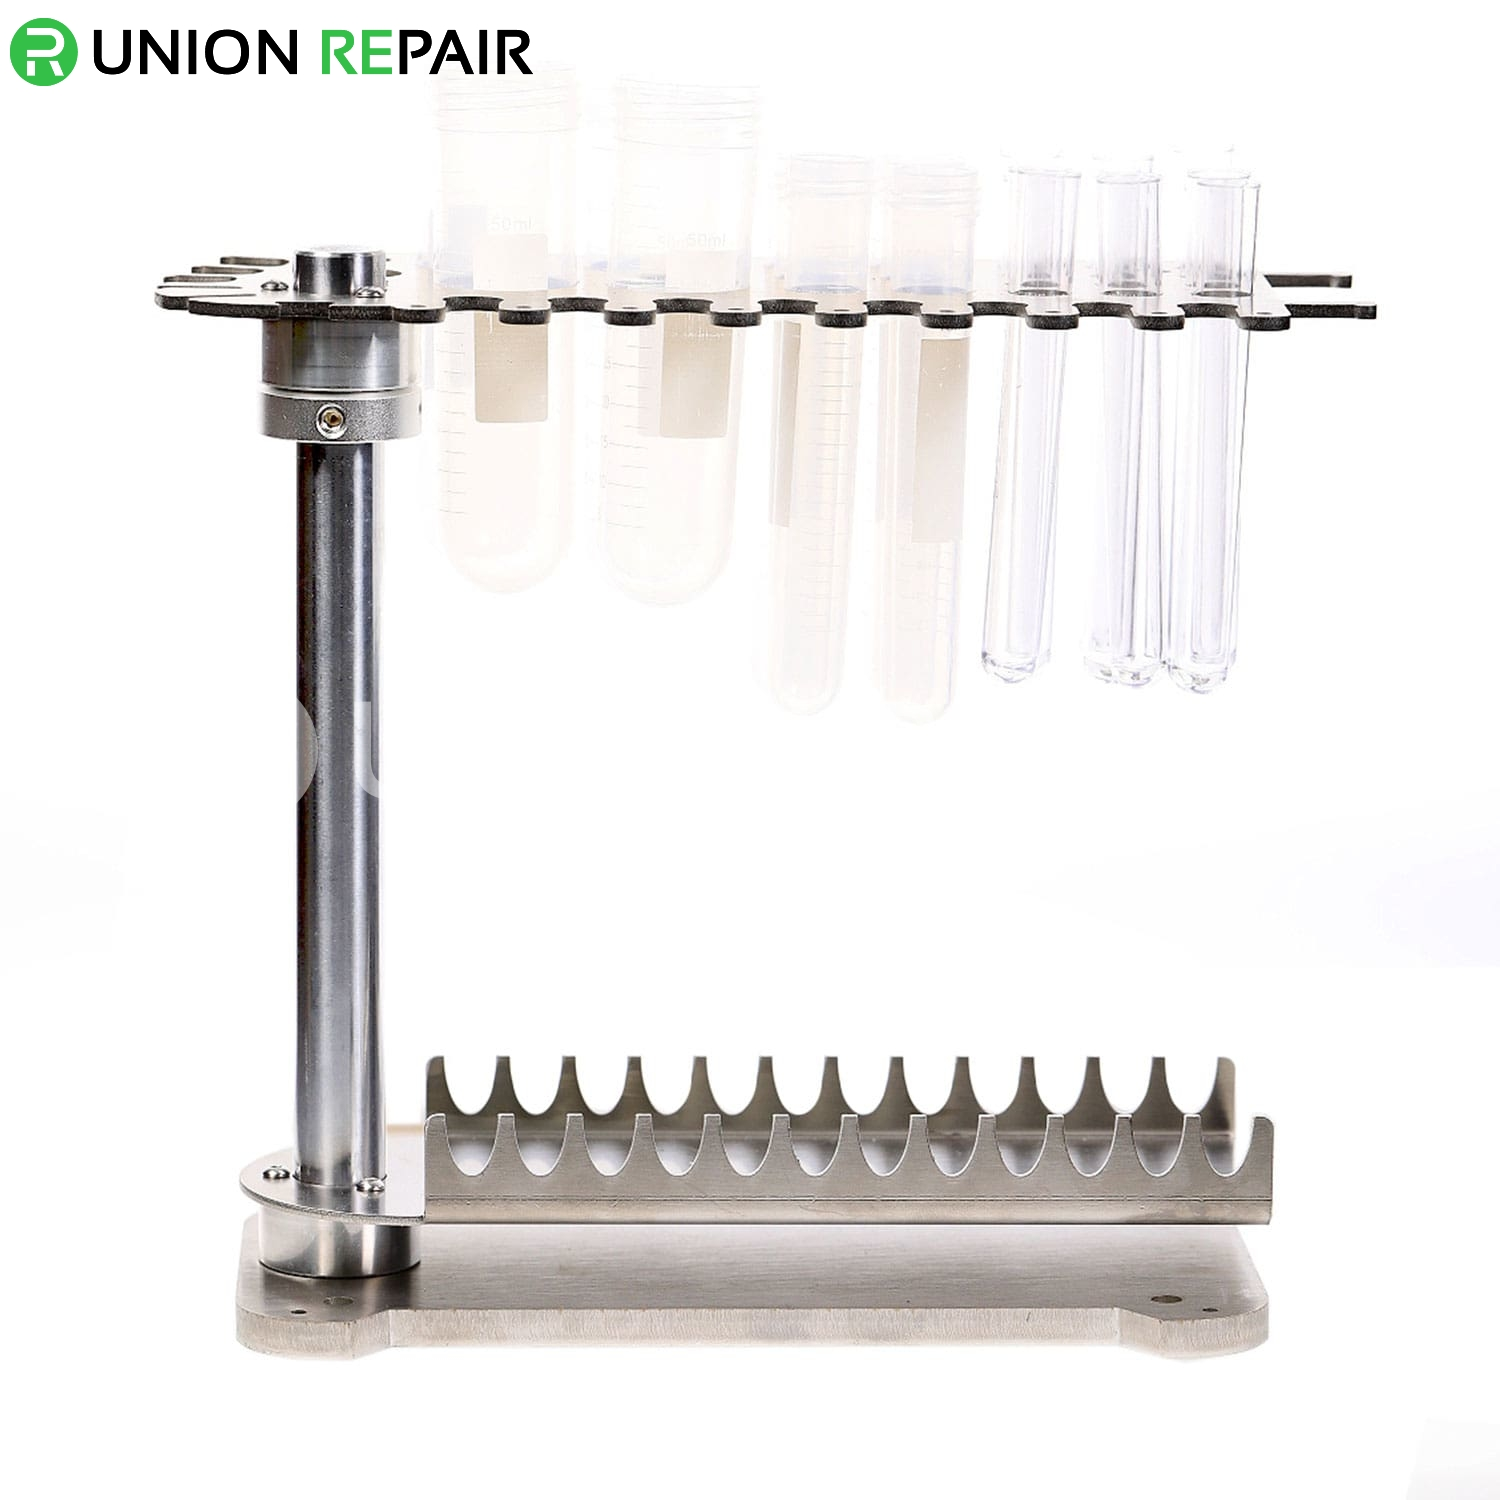 Aluminum Alloy Rotatable Screwdrivers Tool Weapon Rack, fig. 6